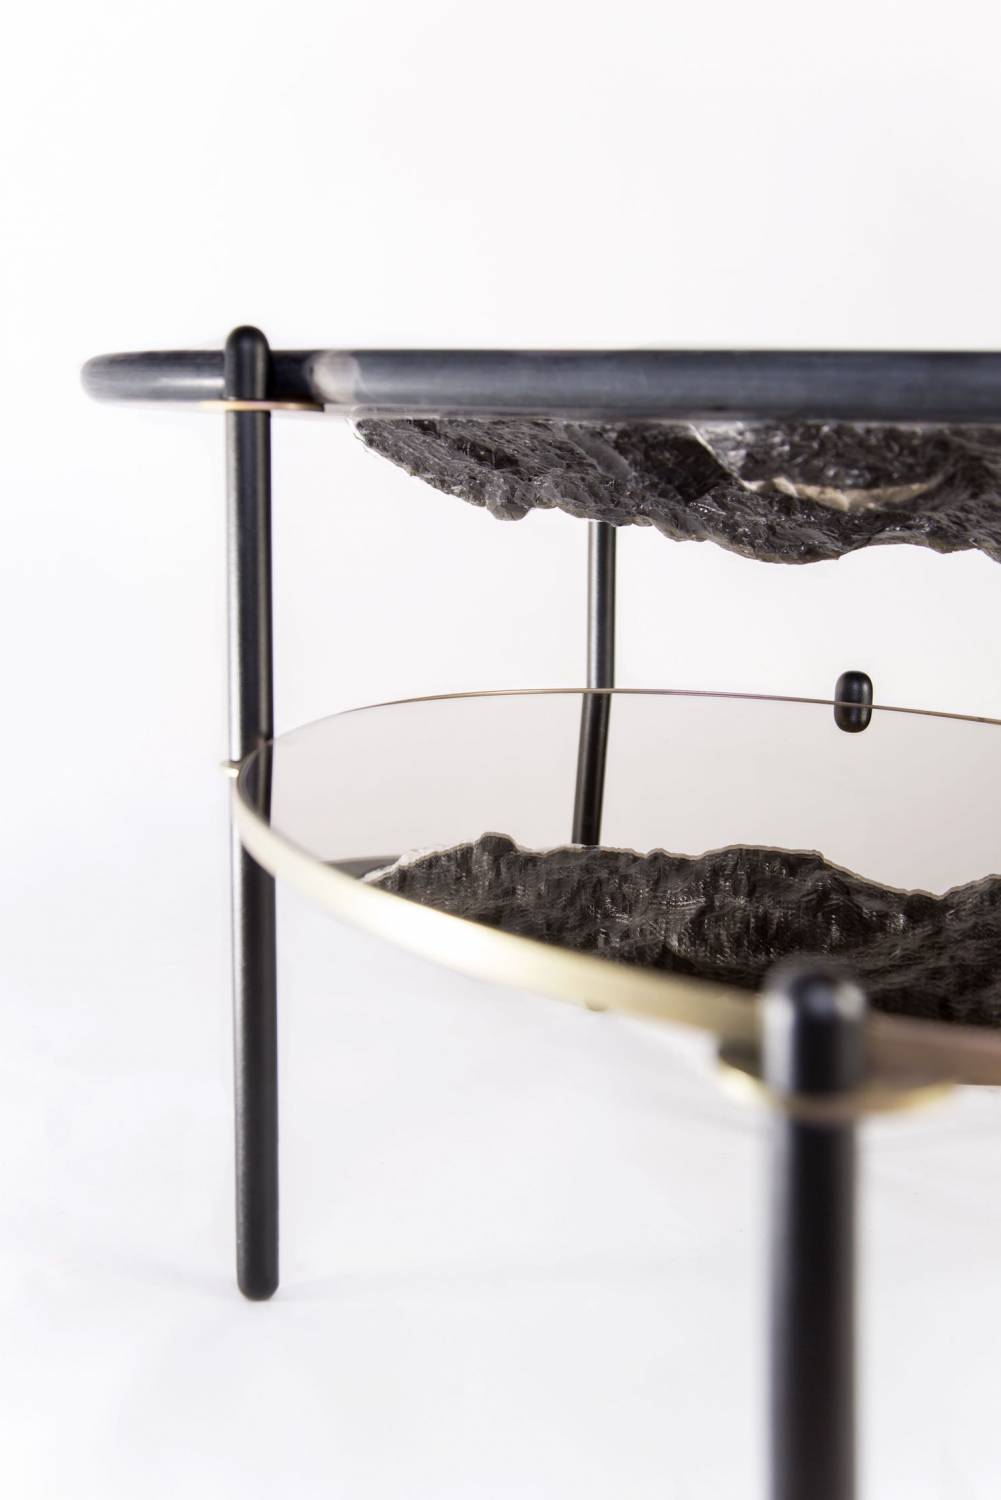 Binomios coffee table by Comité de Proyectos | Flodeau.com